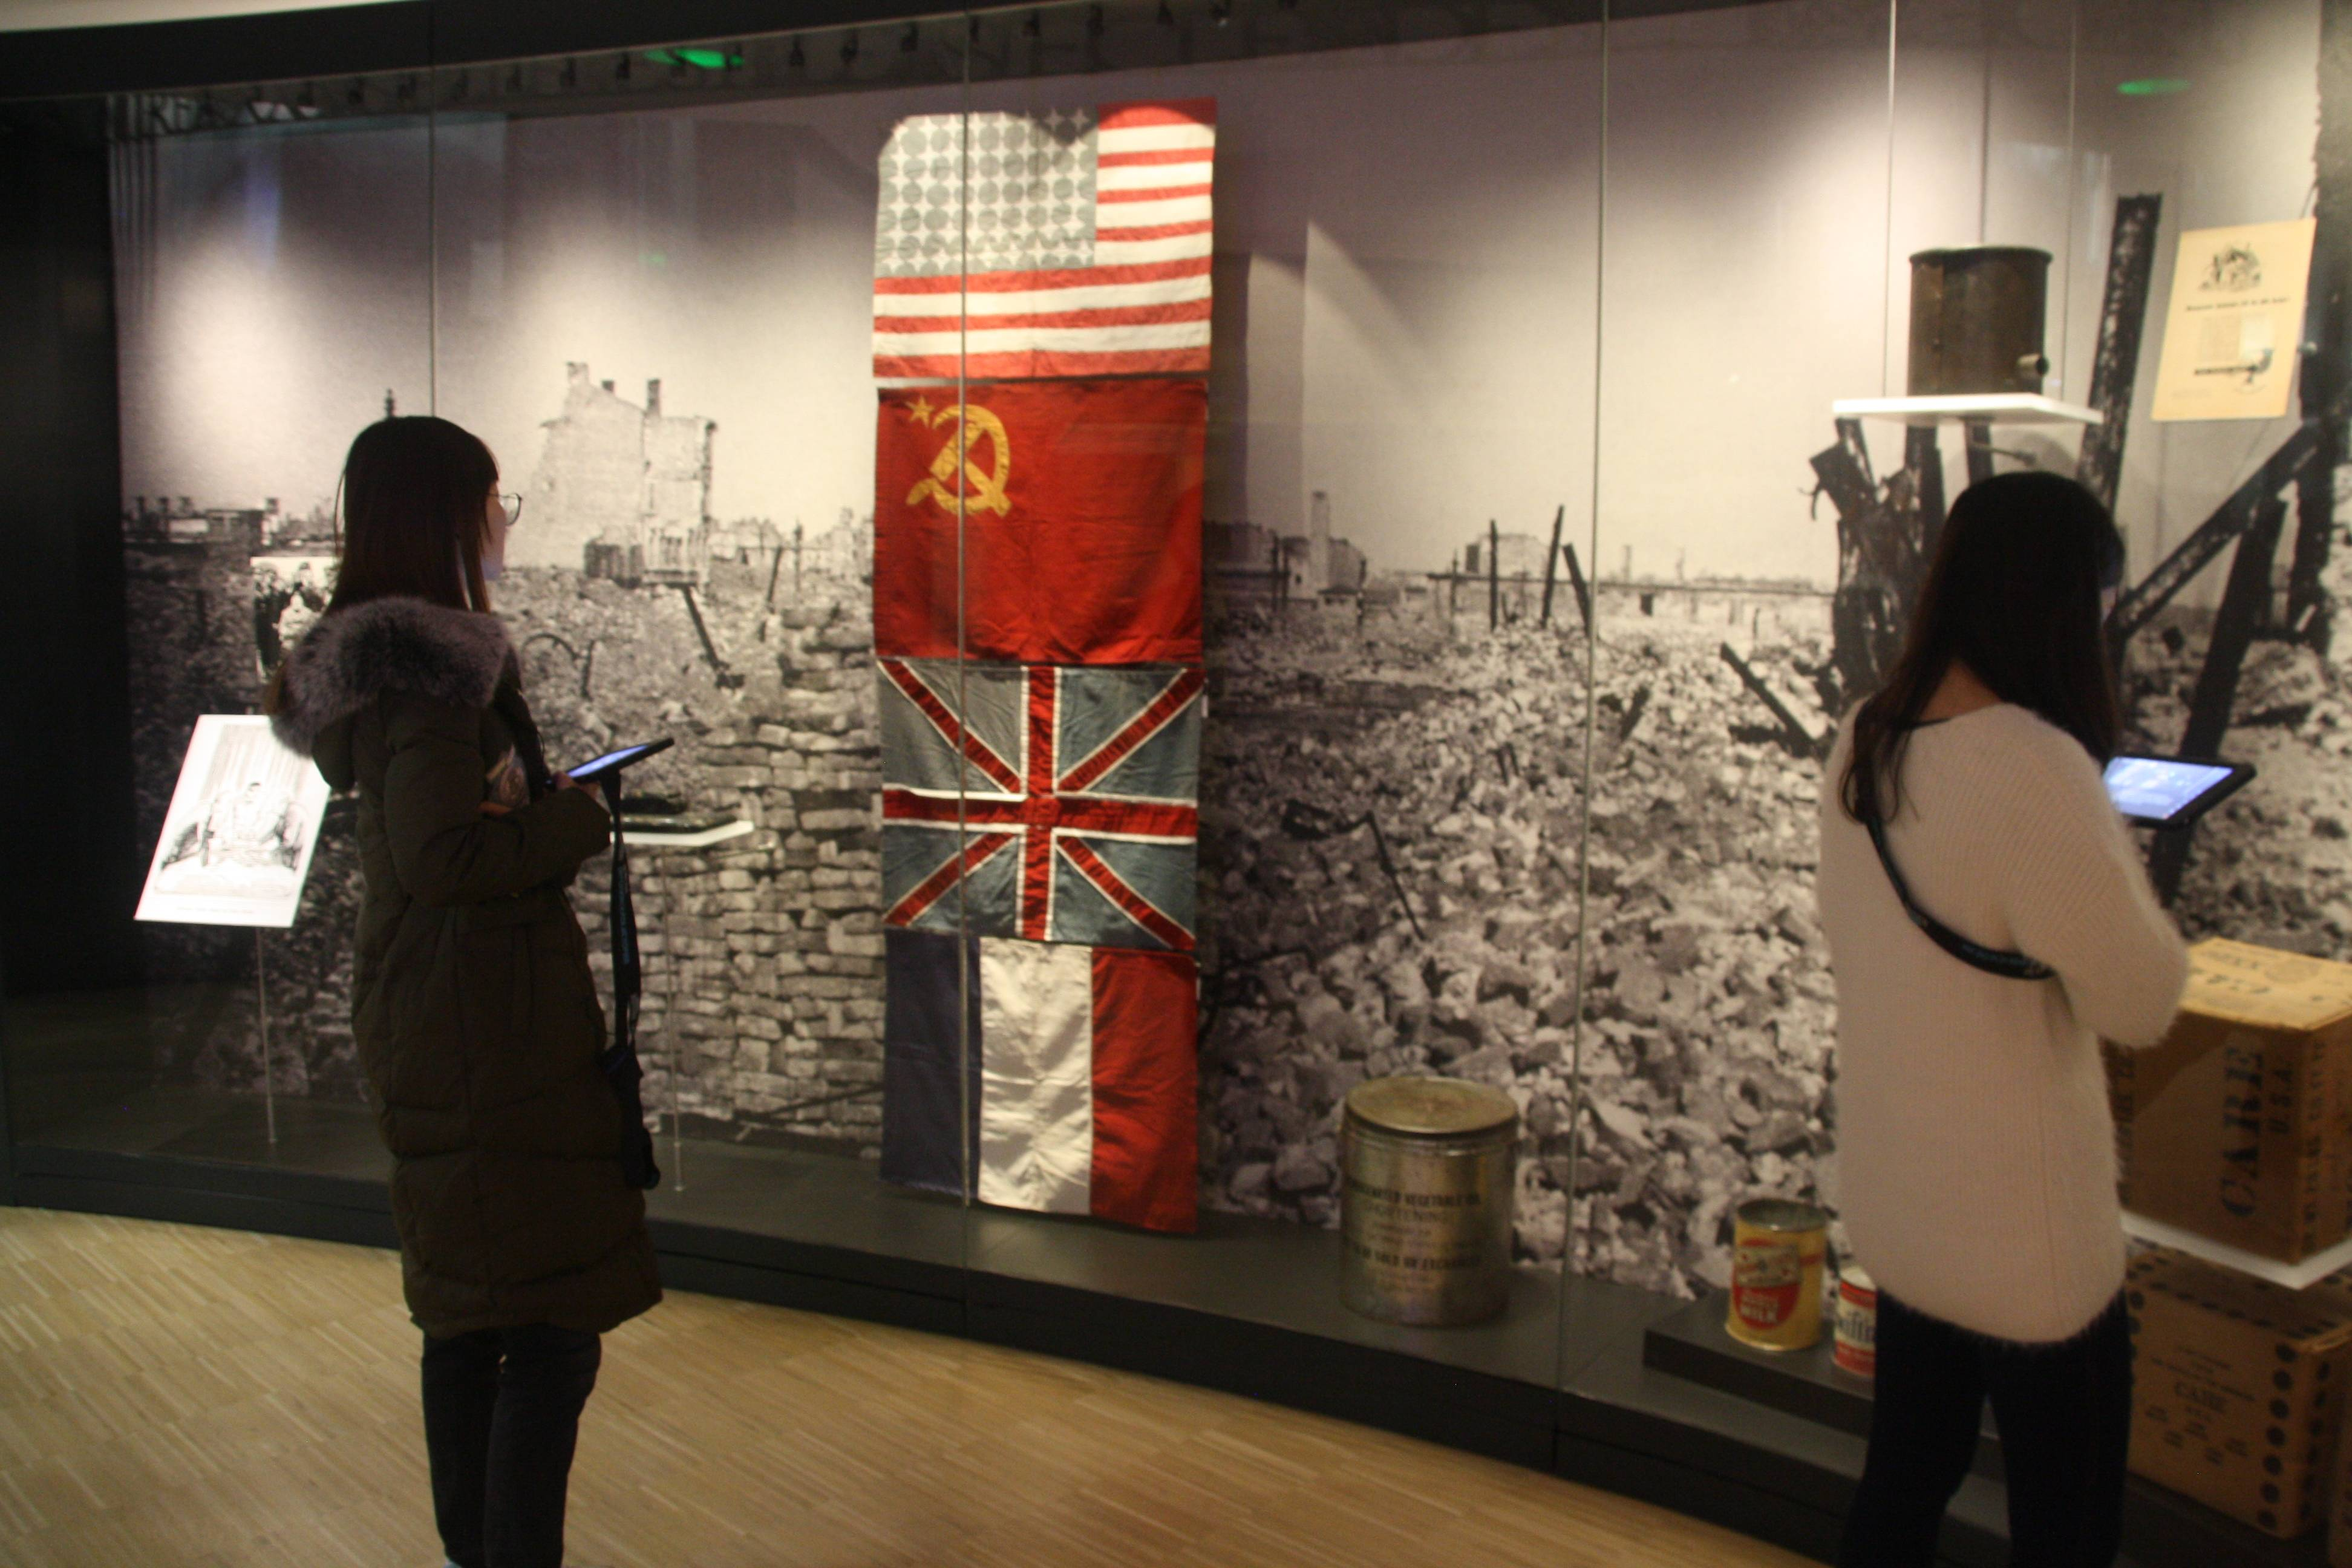 Exhibits about the second world war